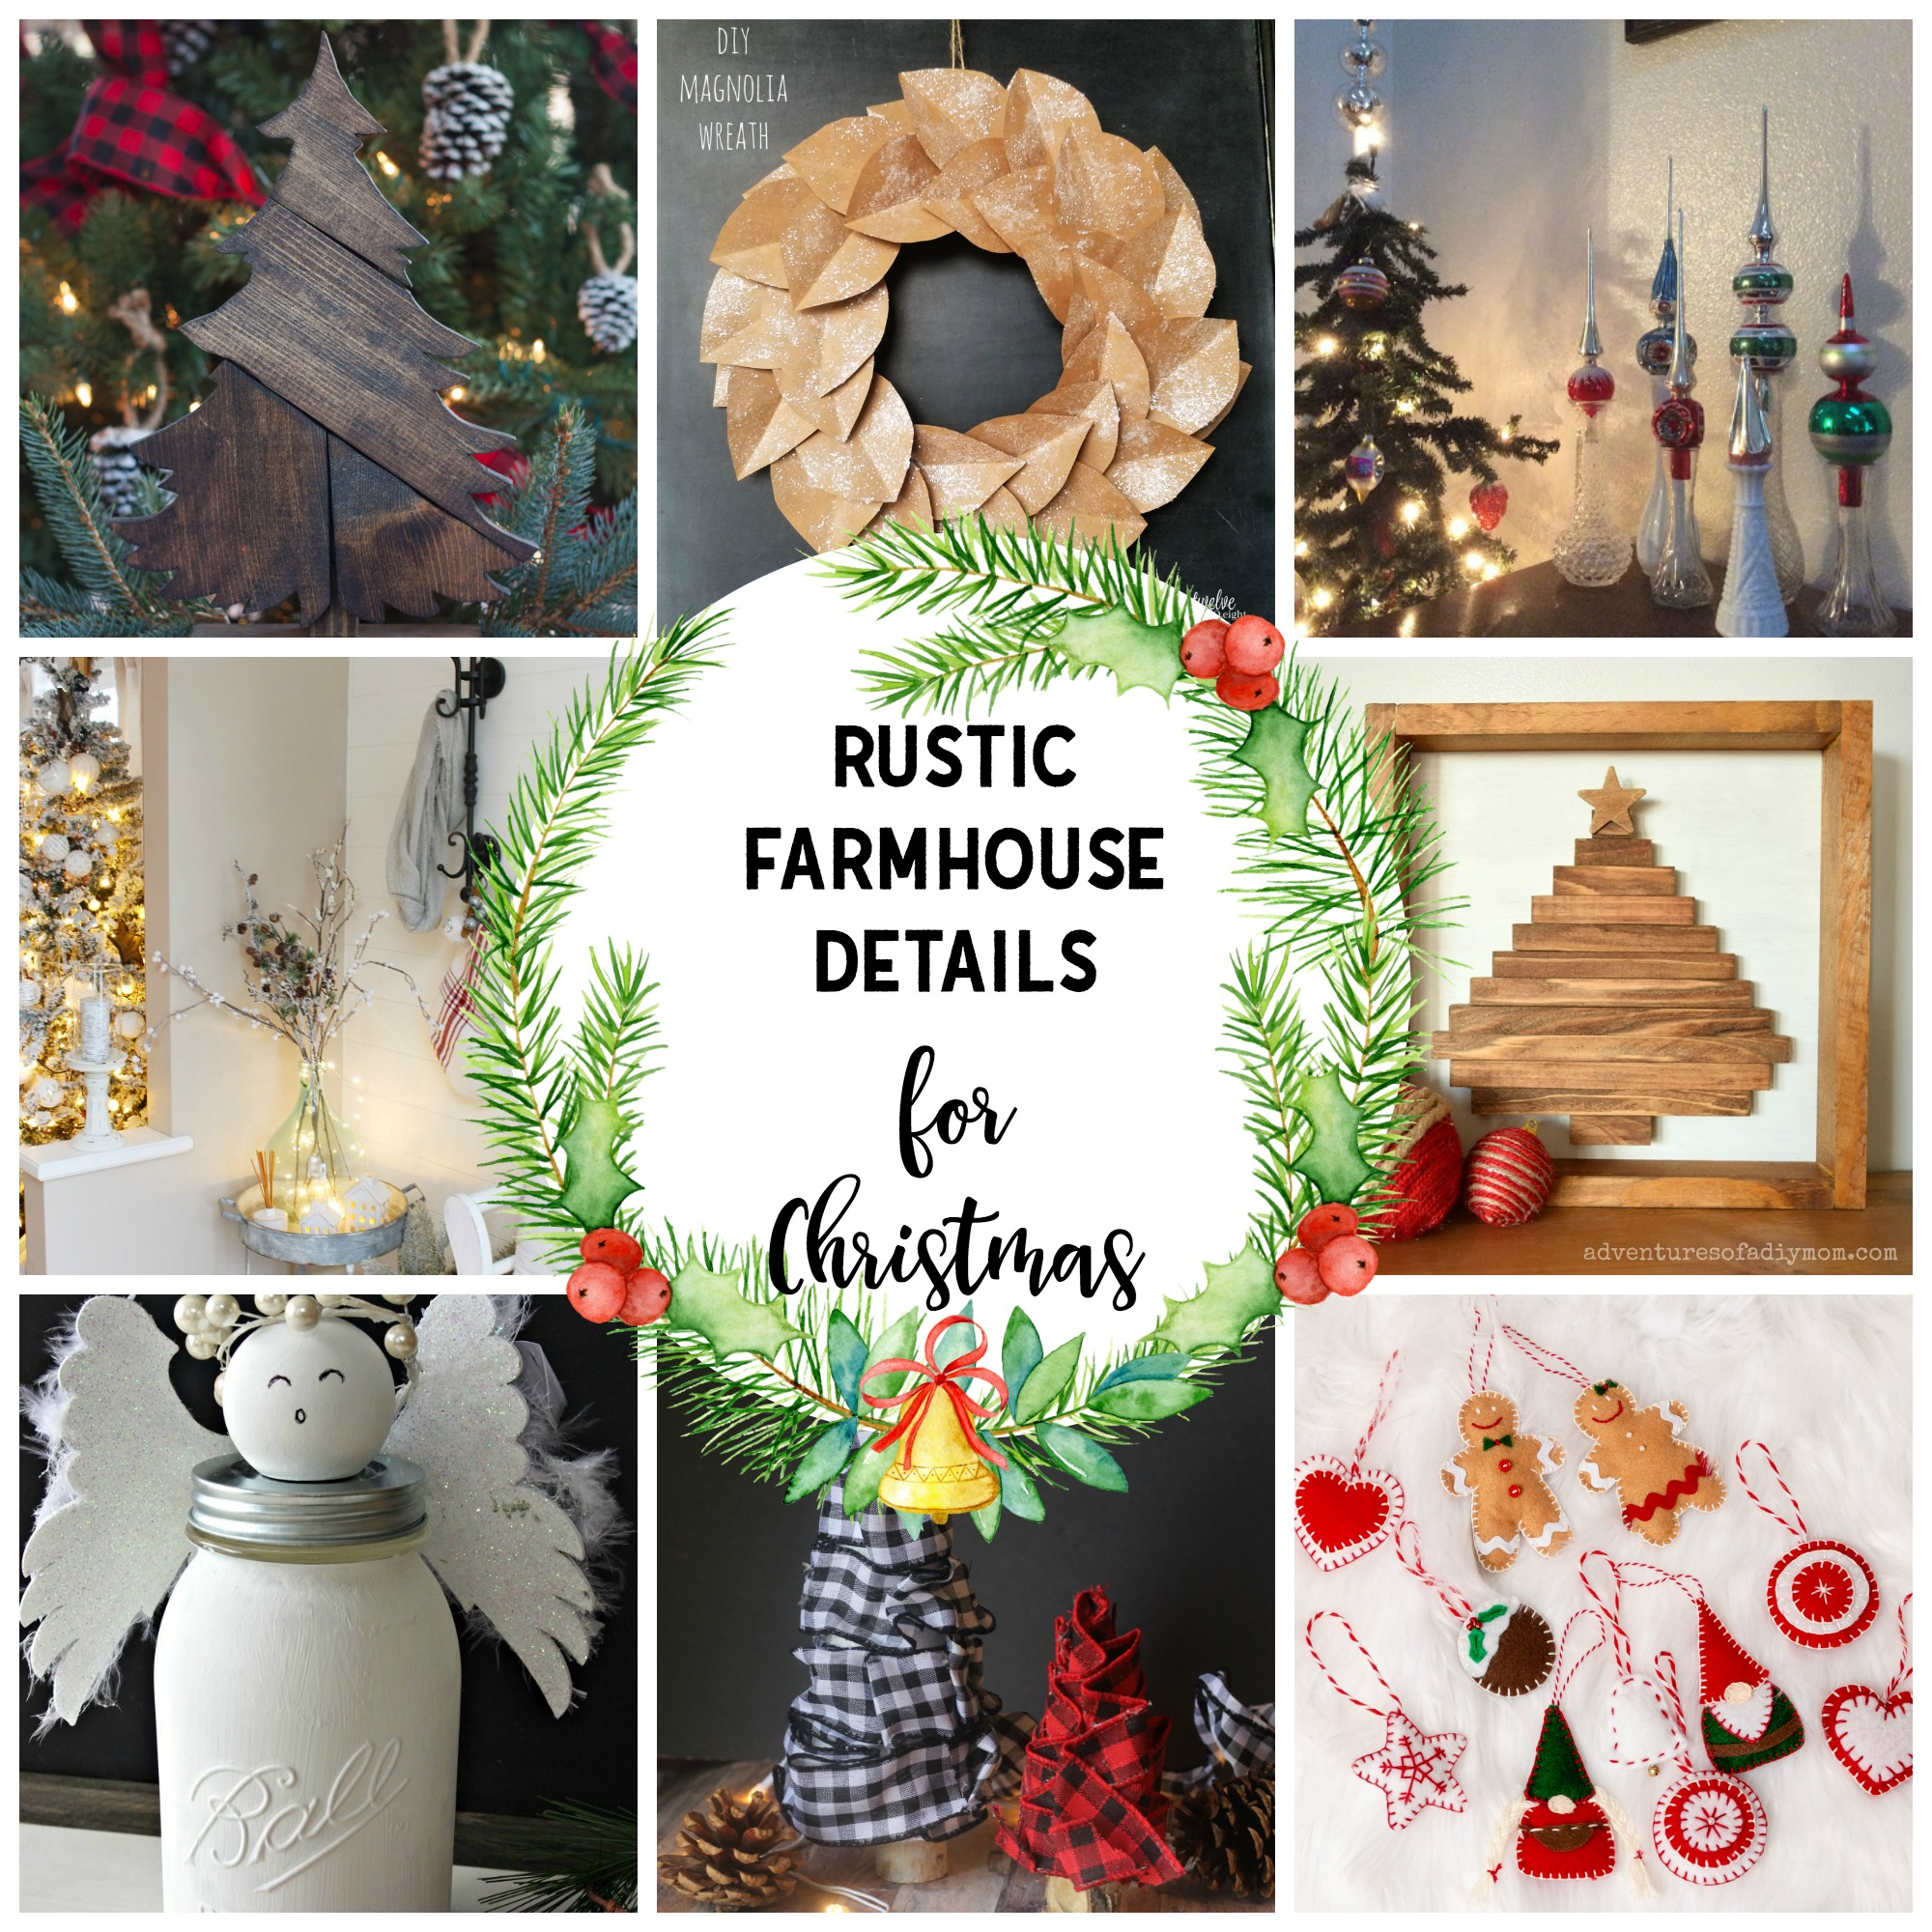 Rustic Farmhouse Details for Christmas